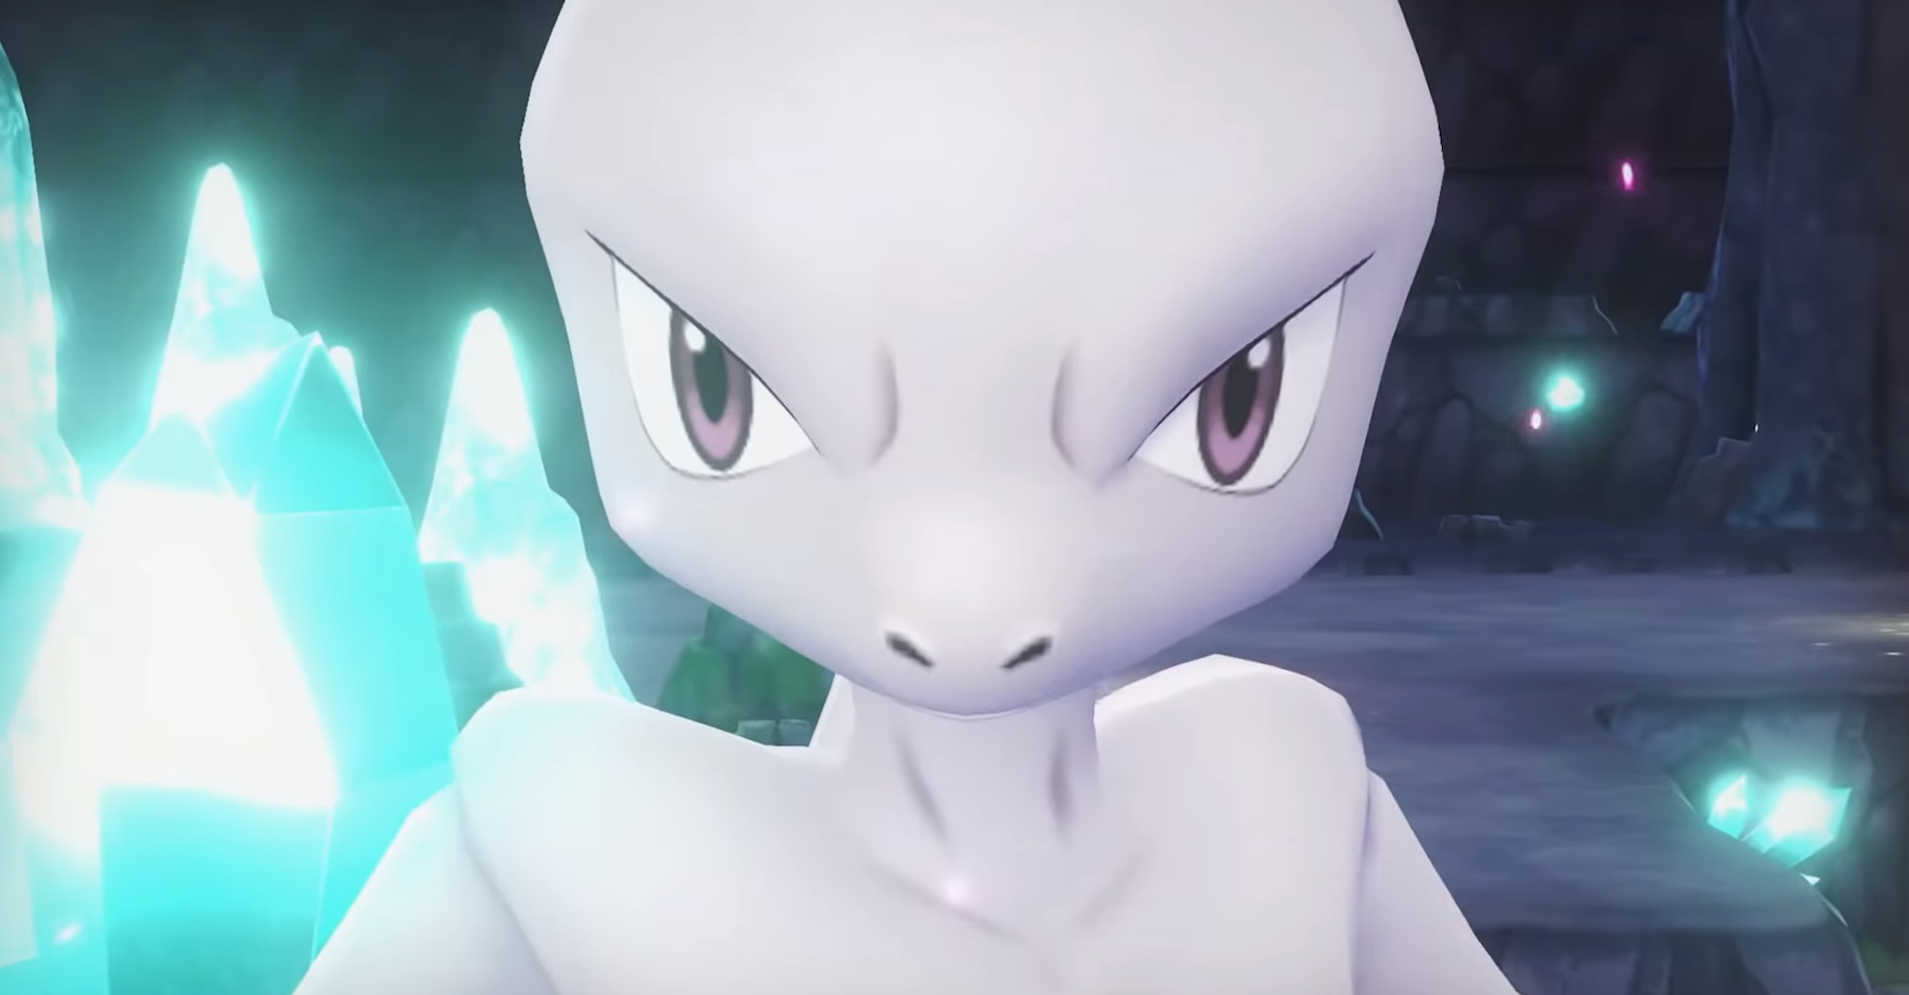 You can get a free Mewtwo for Pokémon: Let's Go by visiting Best Buy